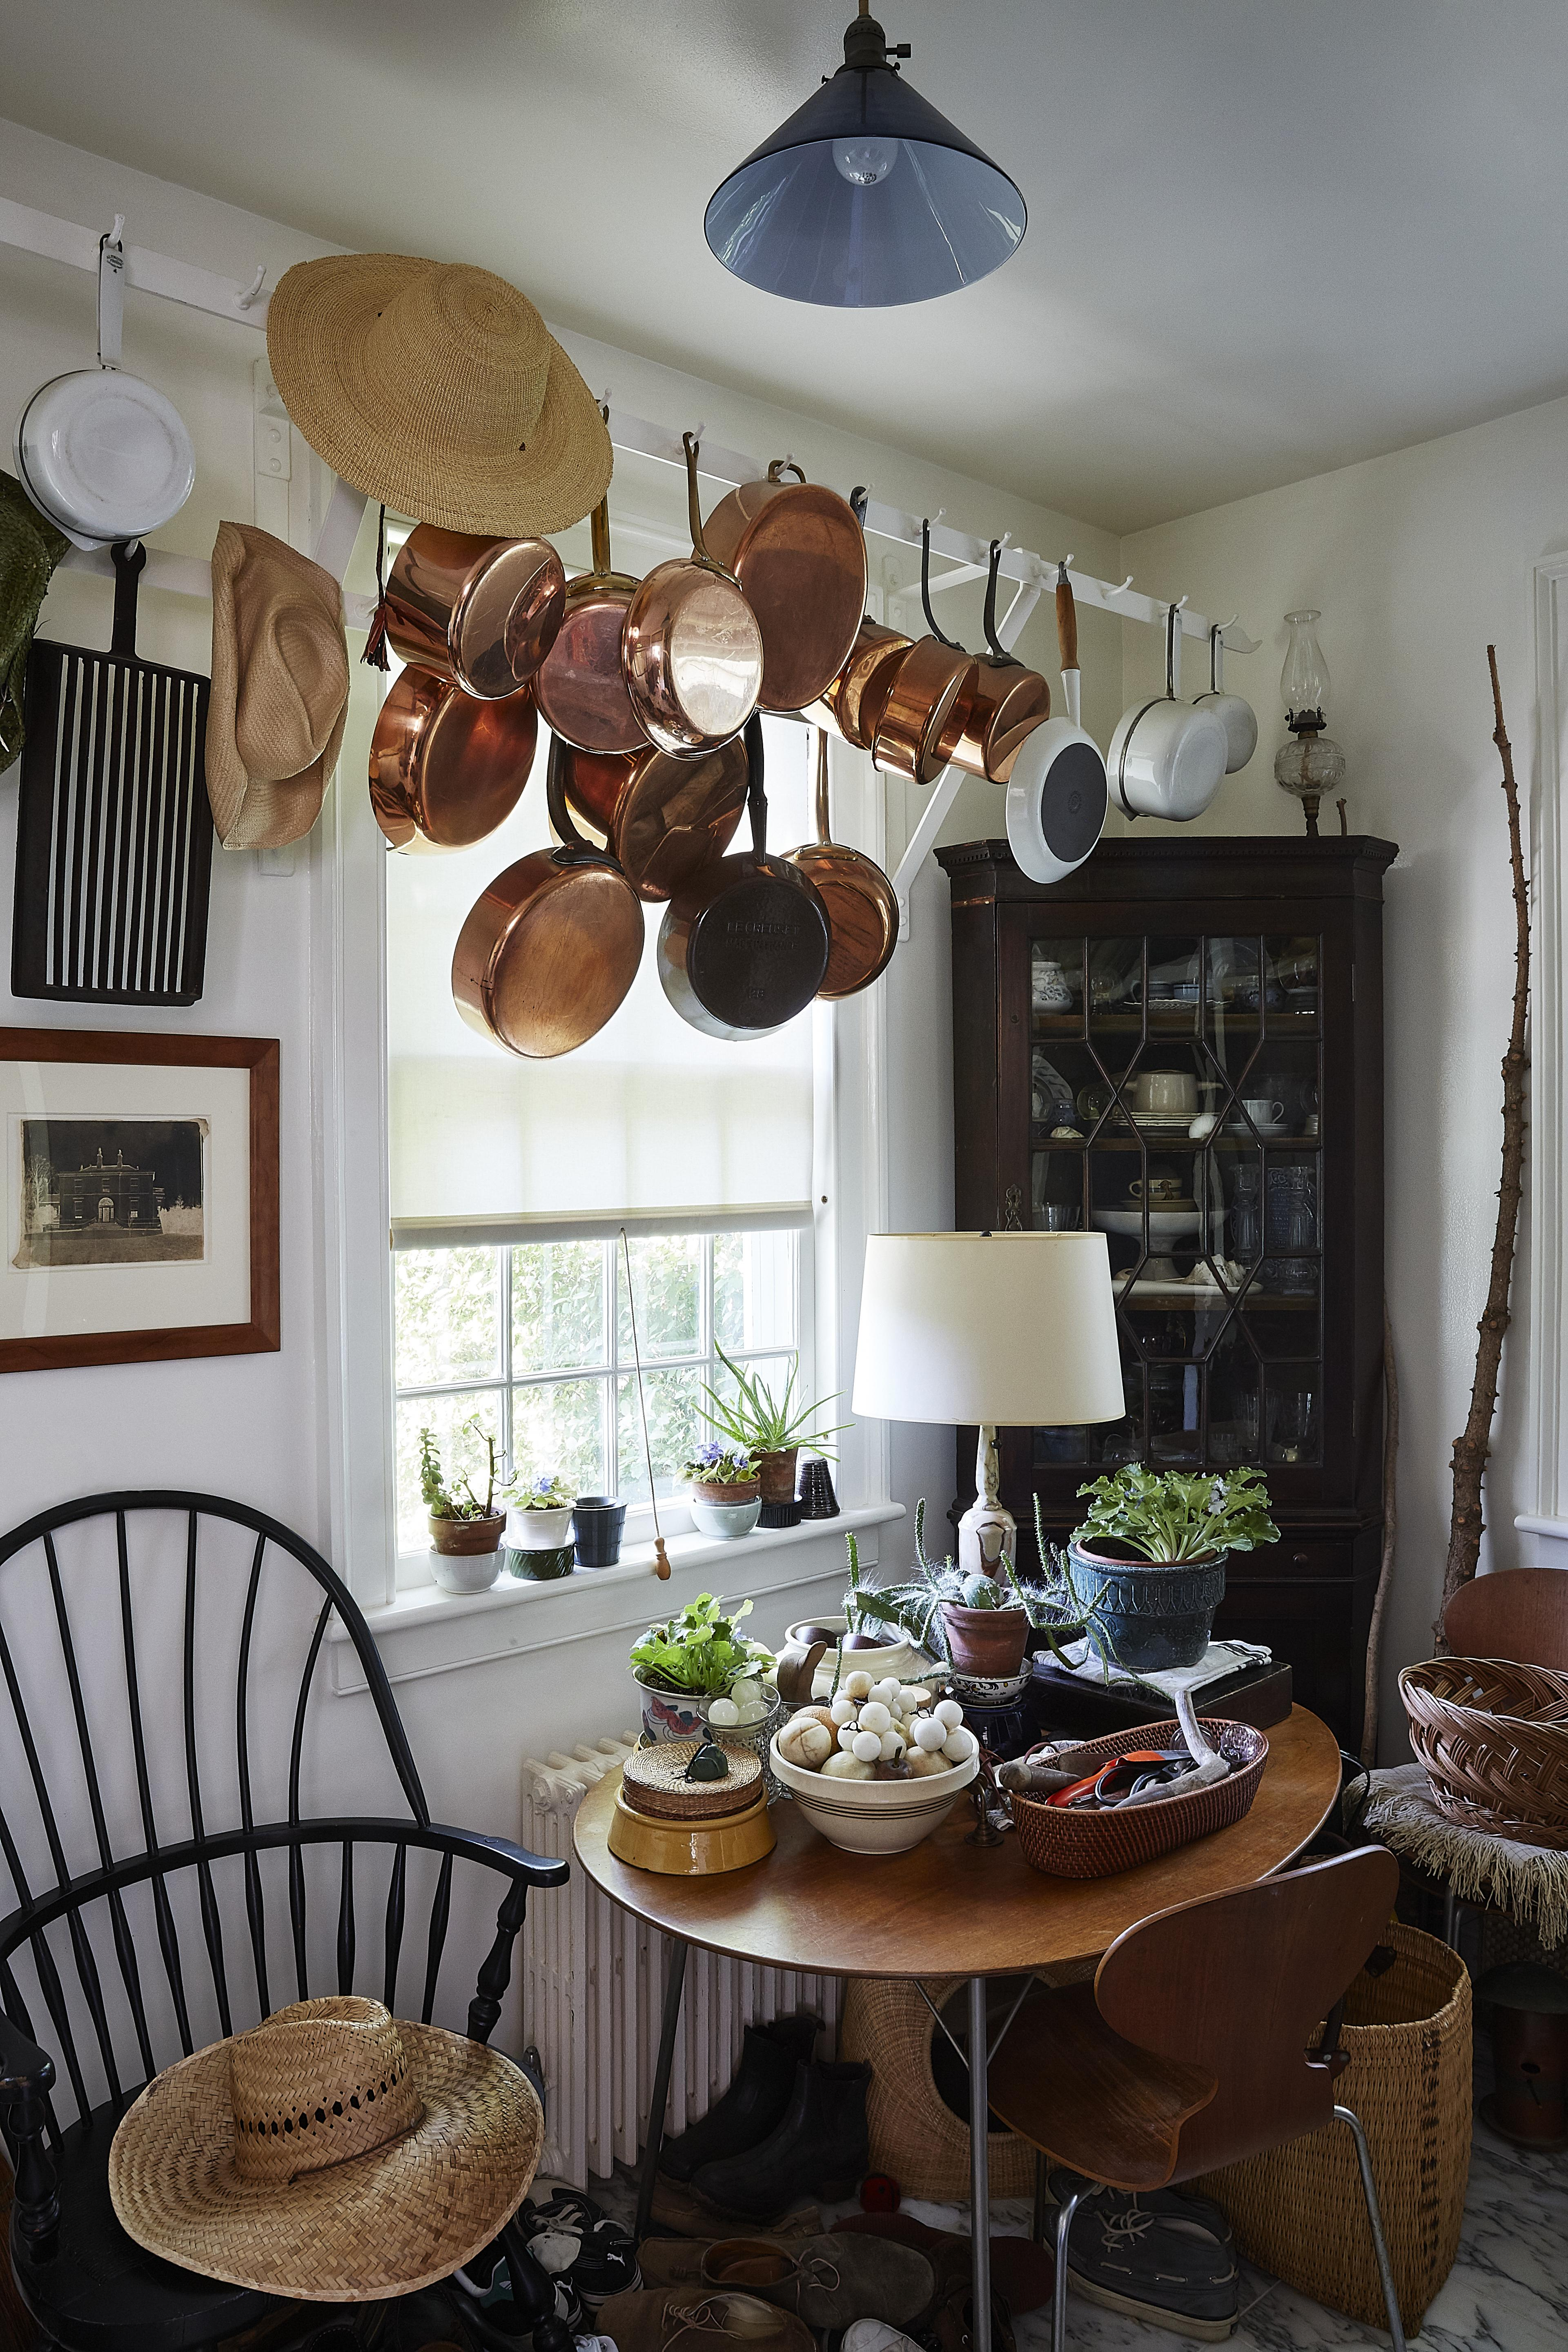 long island home hanging pots and straw hat on chair